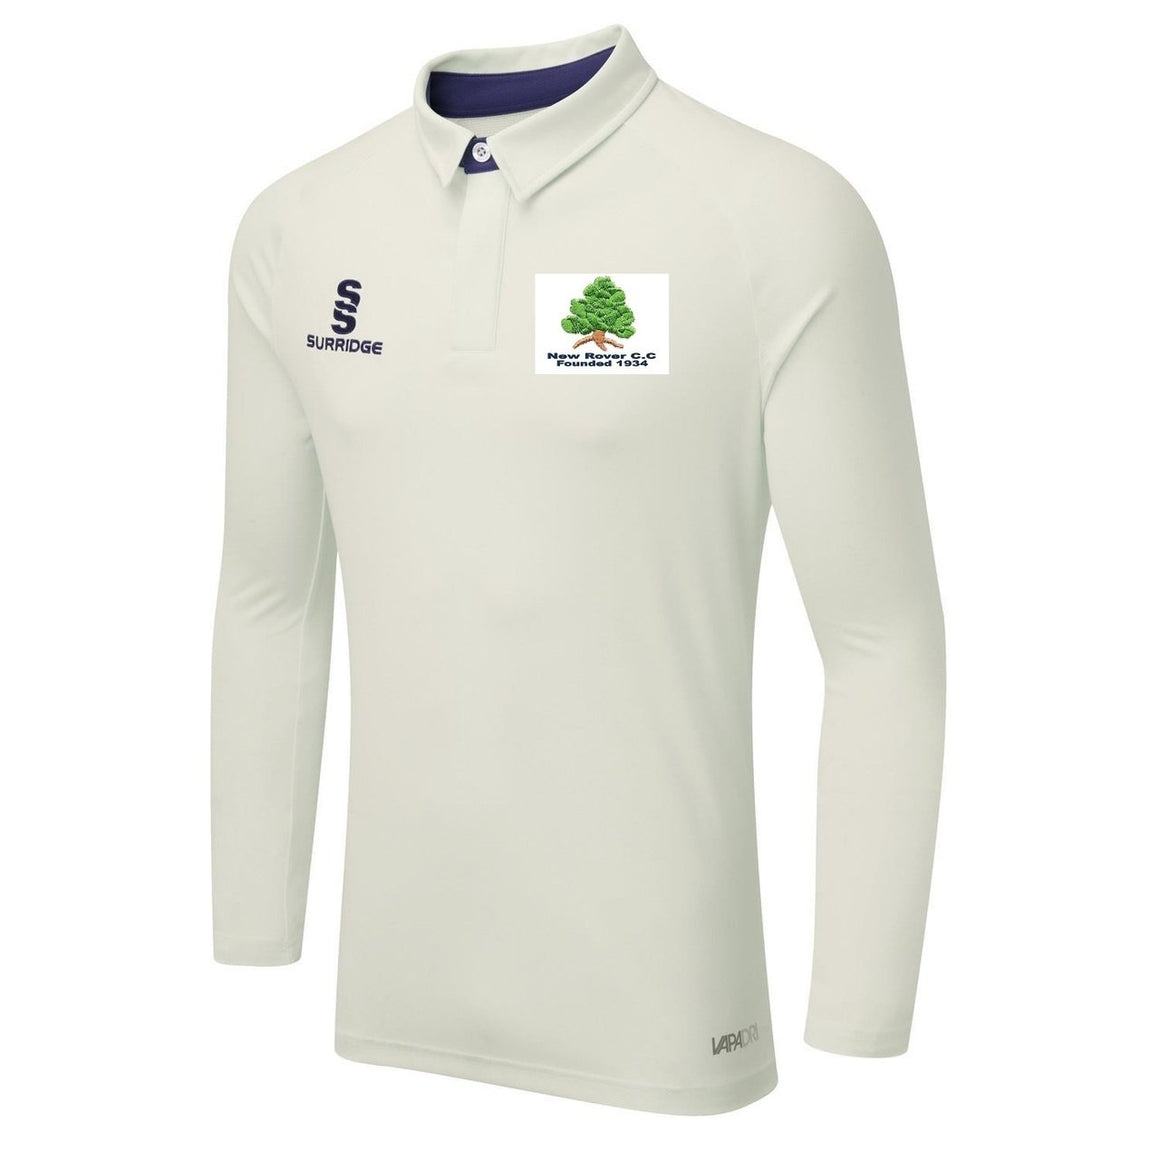 New Rover CC Tek Playing Shirt (Long Sleeve)